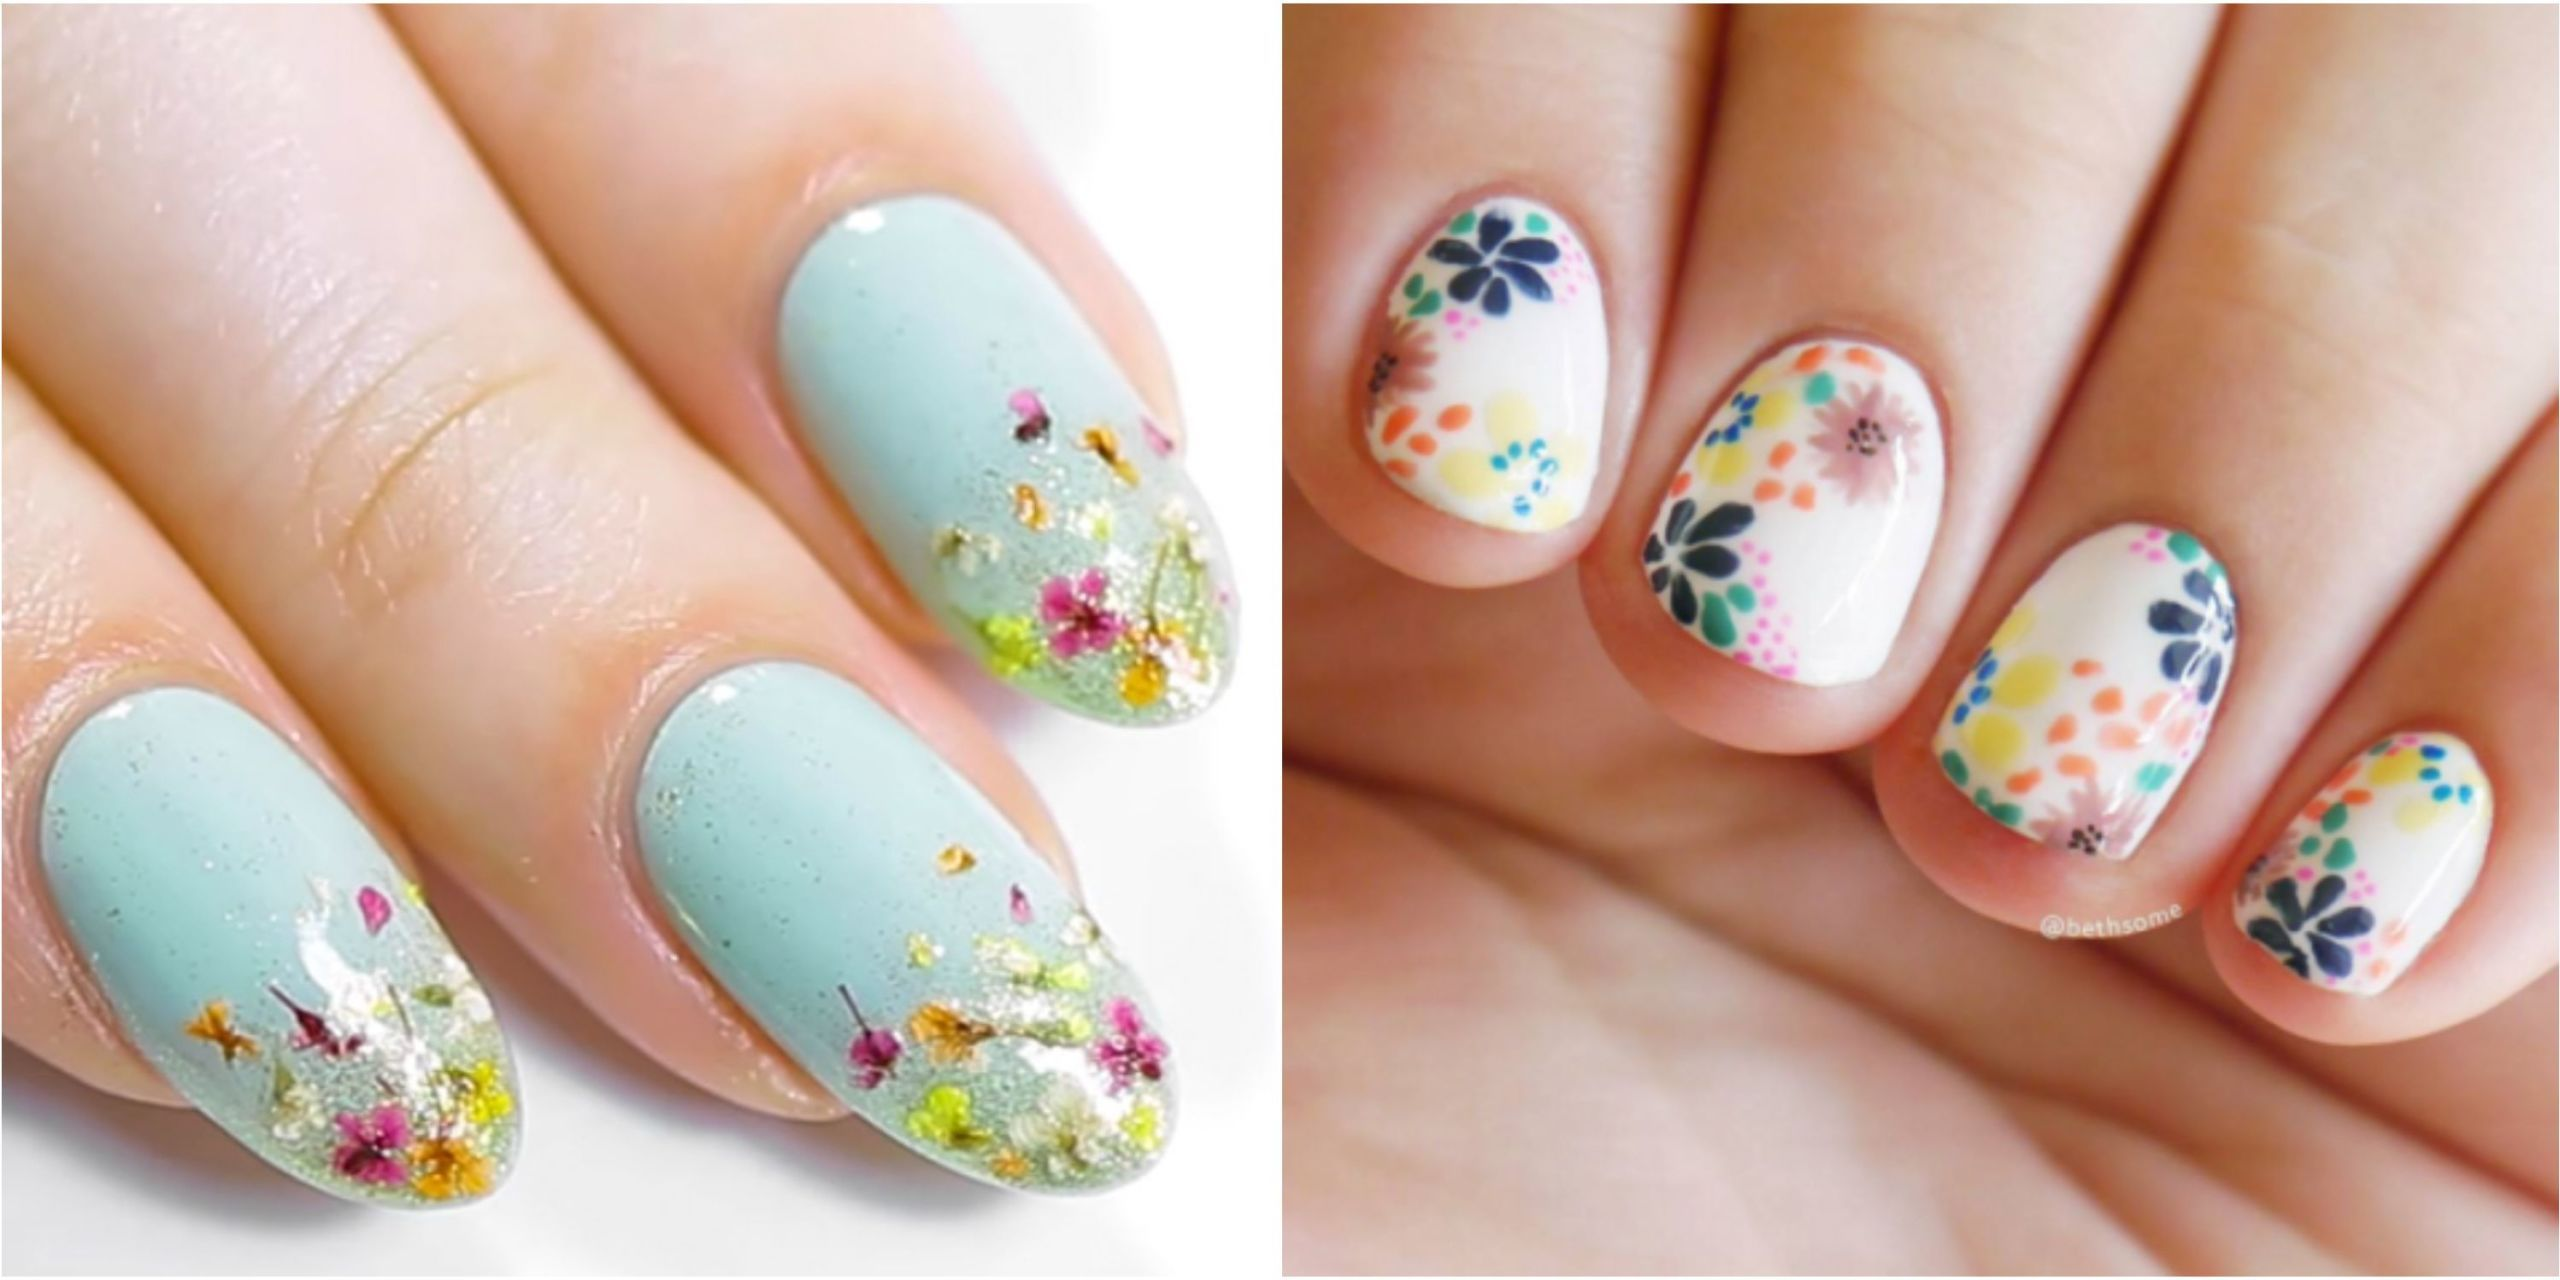 25 Flower Nail Art Design Ideas - Easy Floral Manicures ...